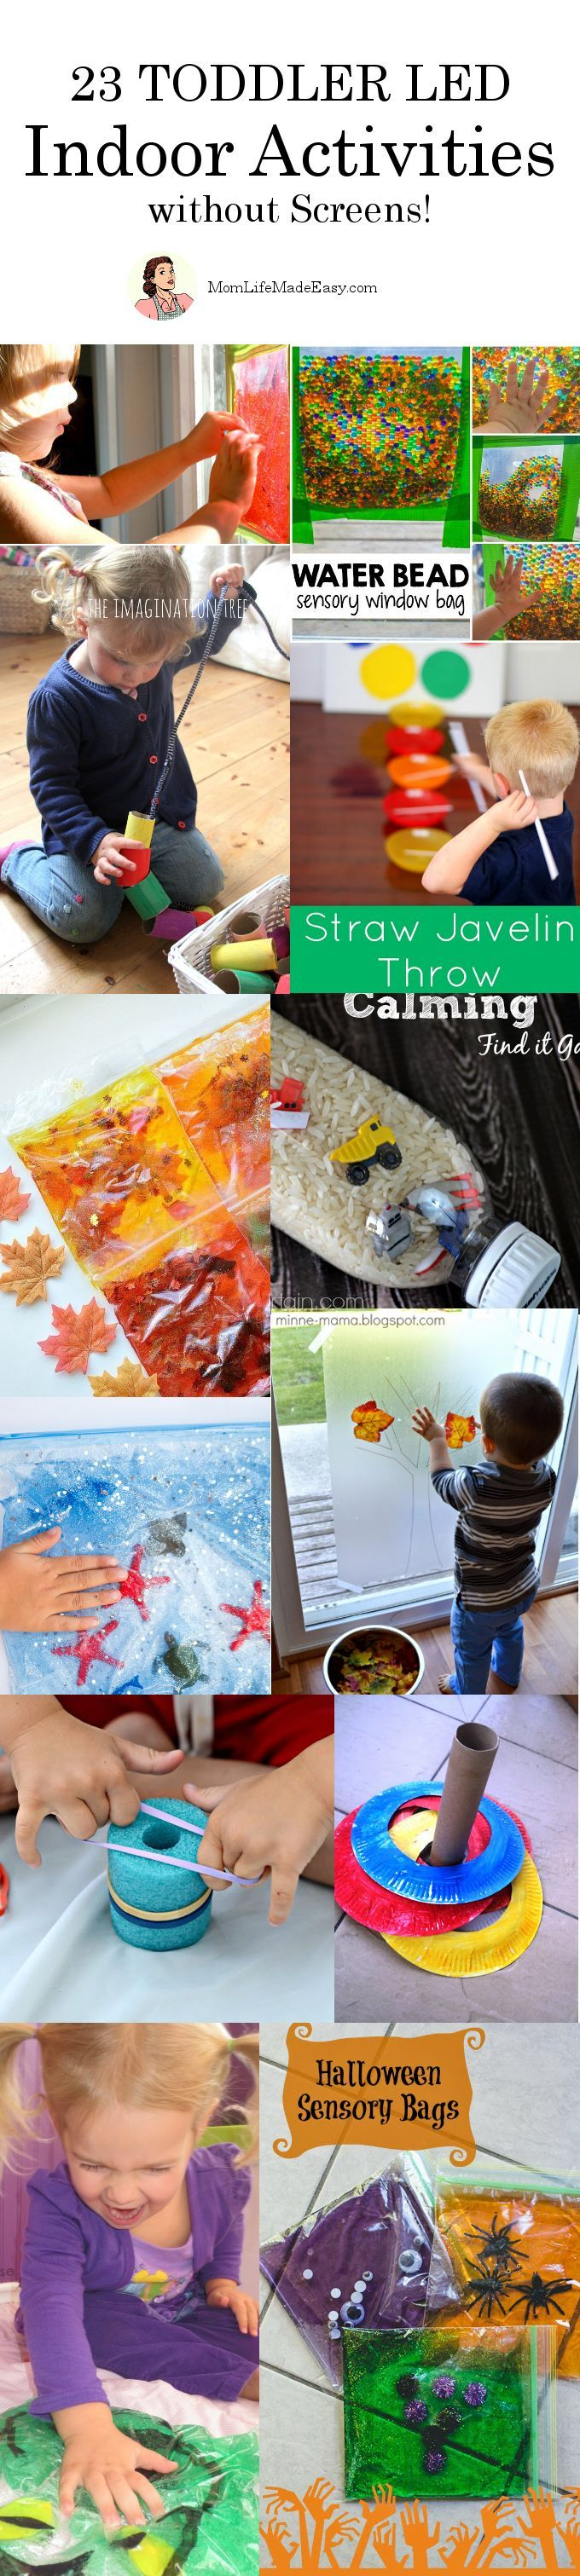 23 Toddler Led Activities without Screens - Mom Life Made Easy